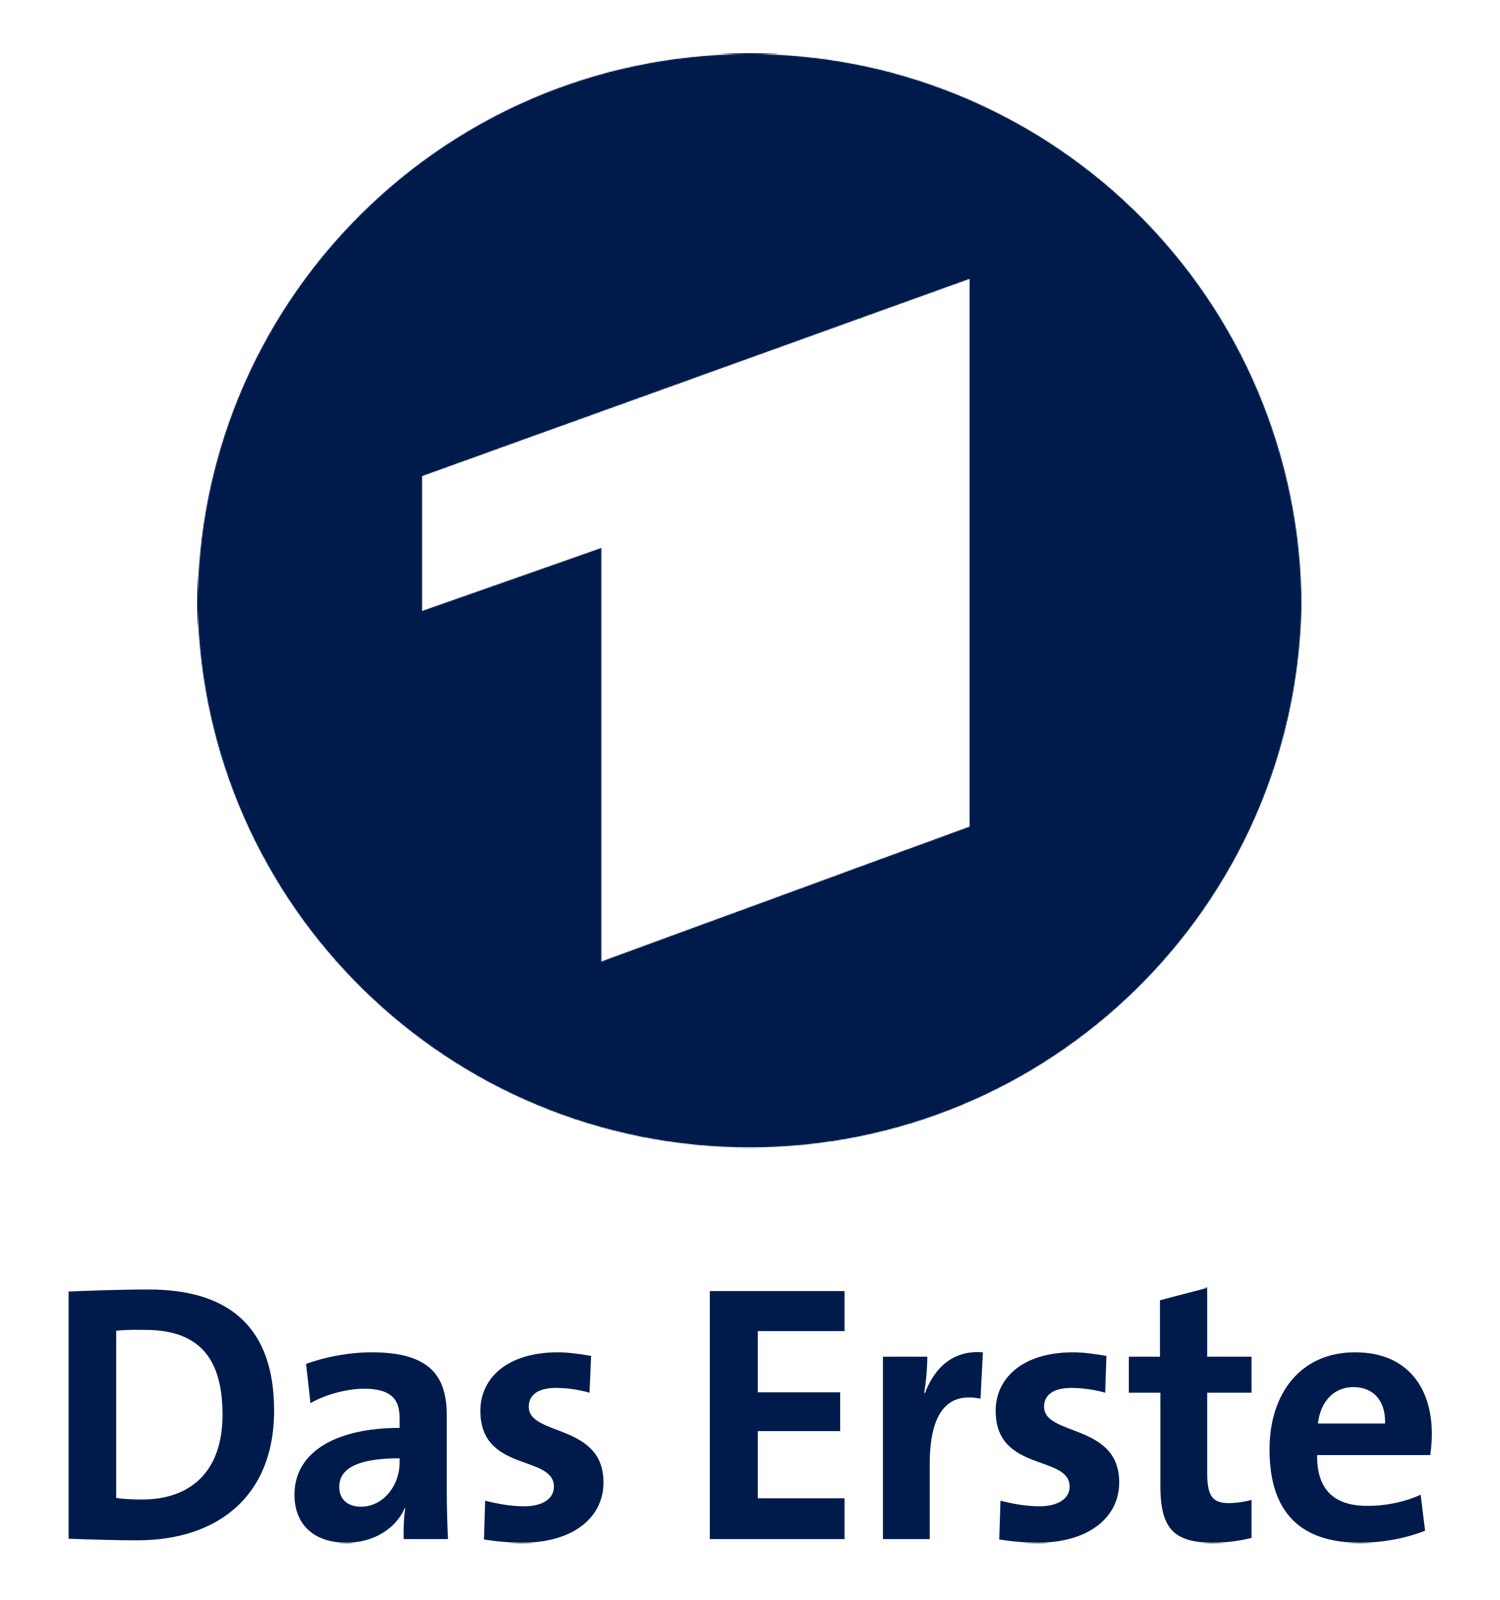 ARD Das Erste Frequency on Sat - Channels Frequency